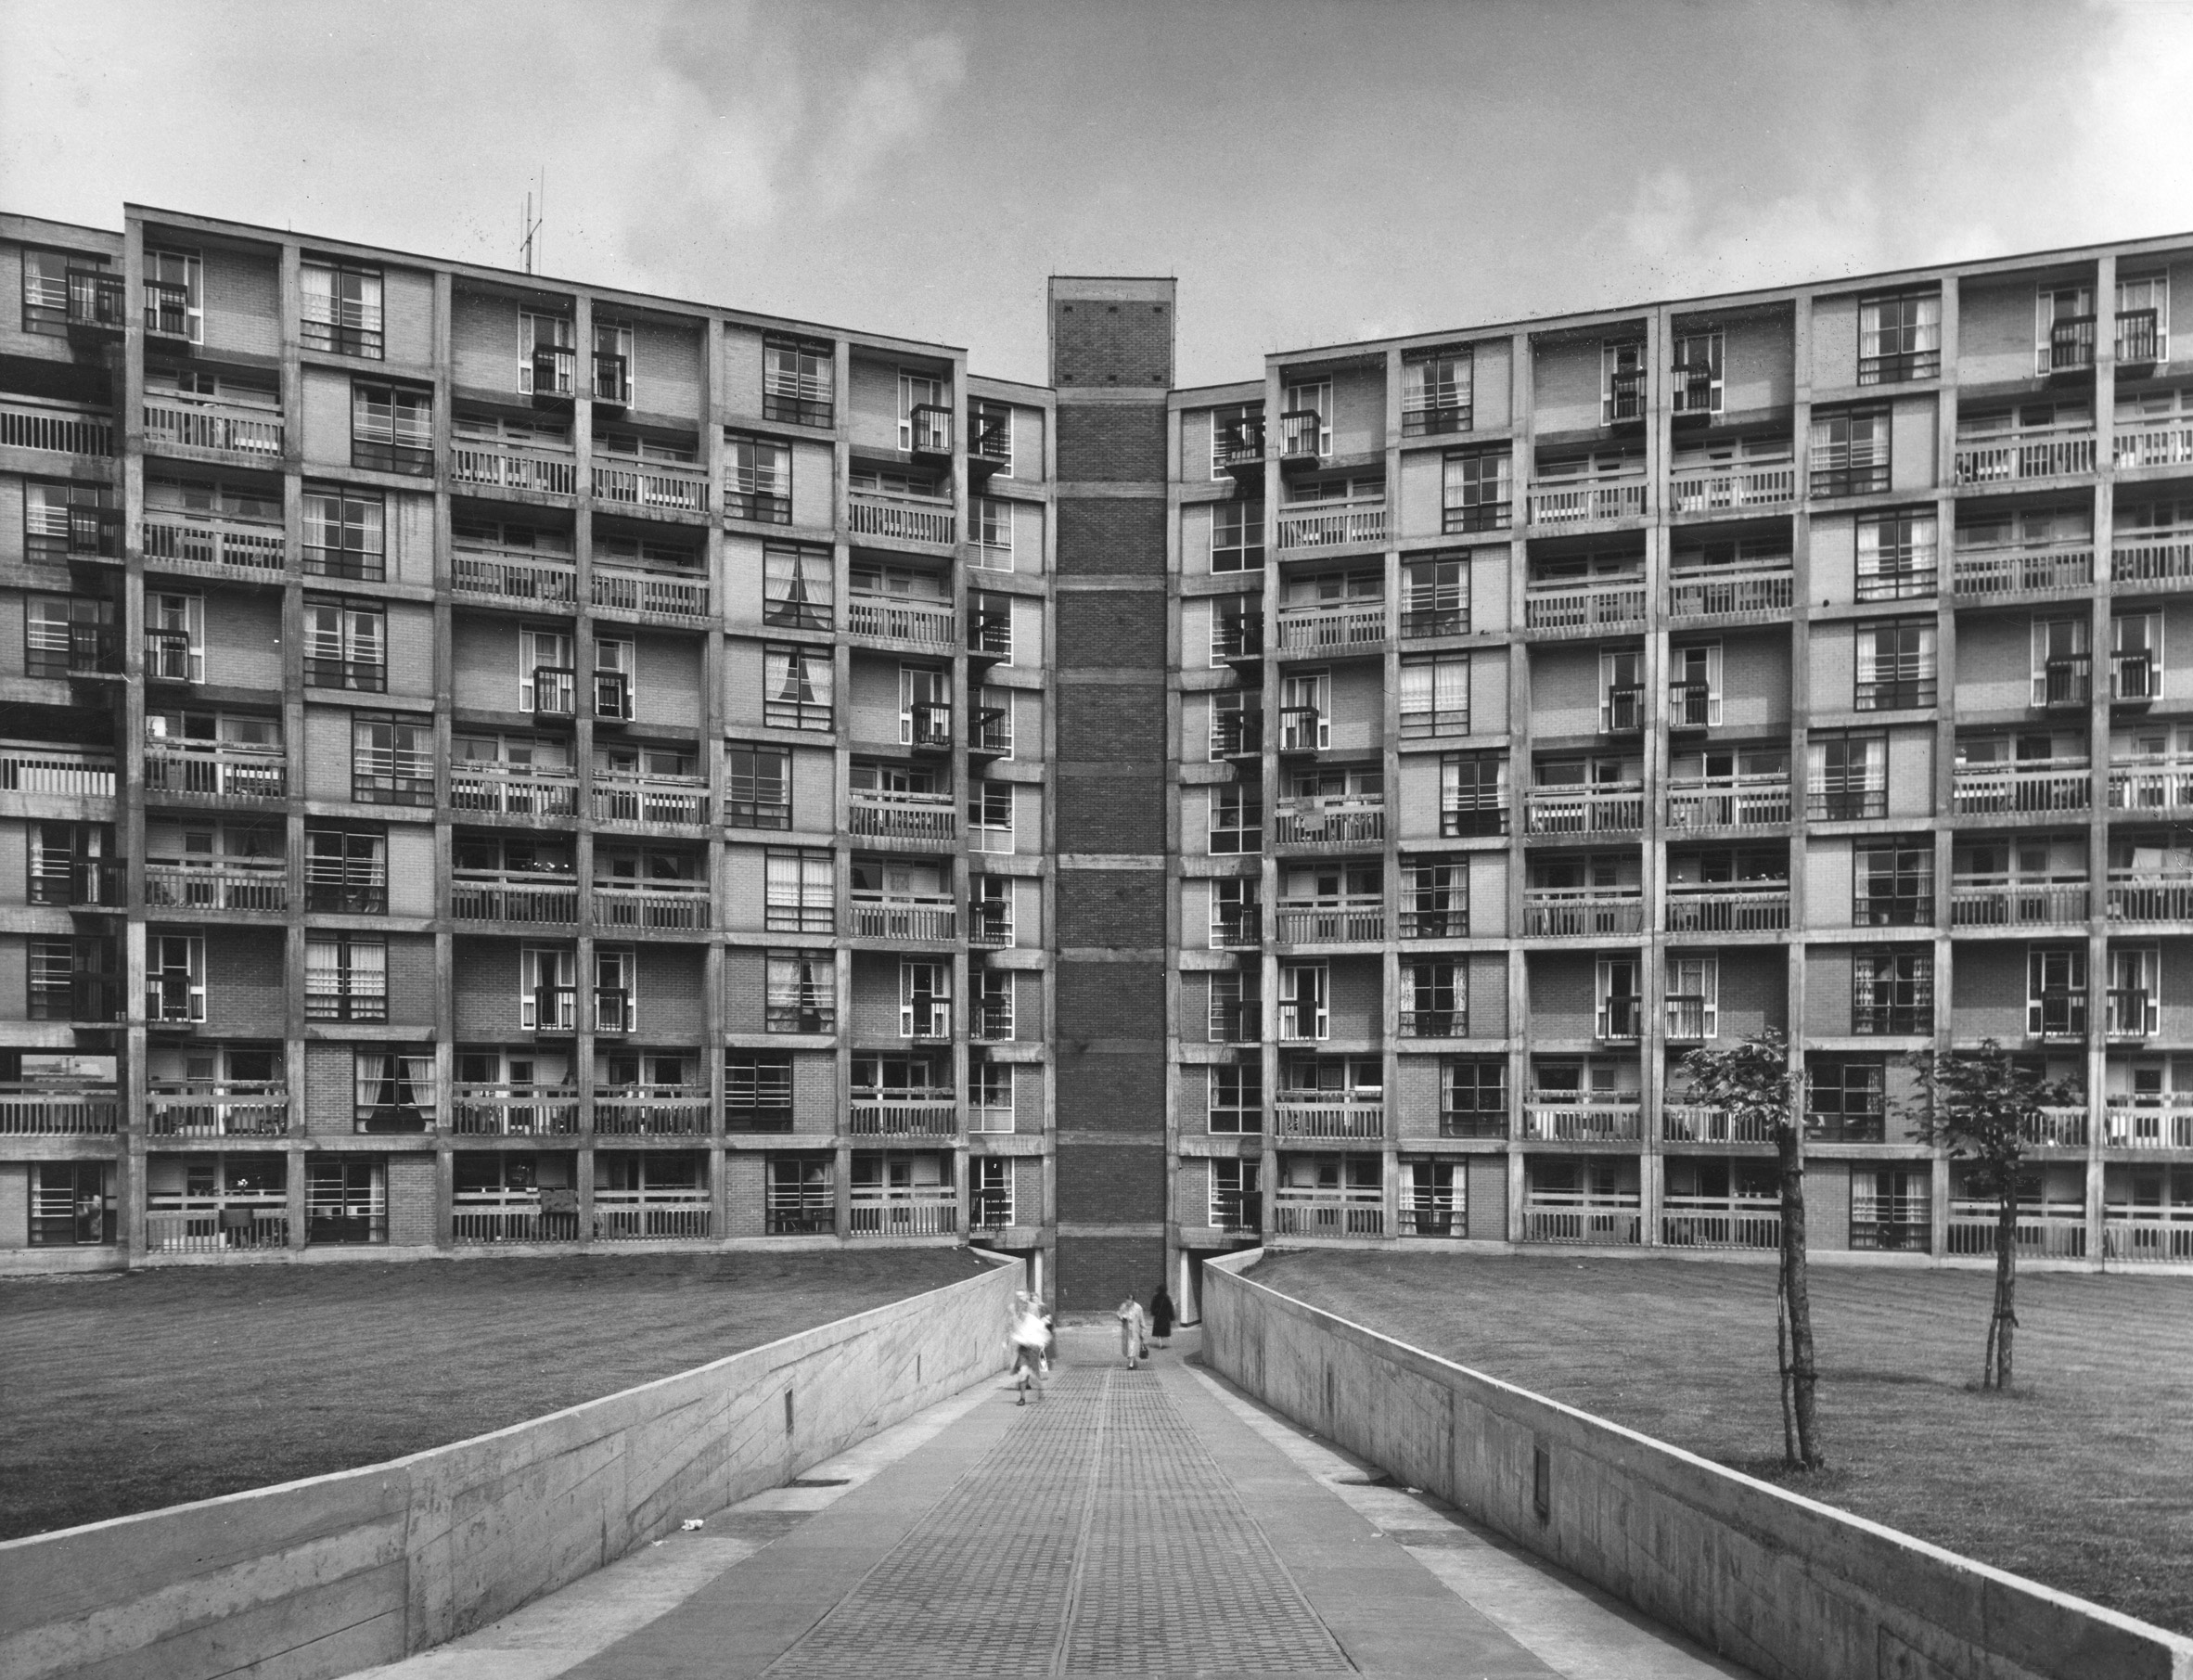 Post-war architecture shouldn't take the blame for political failures, says Owen Hopkins